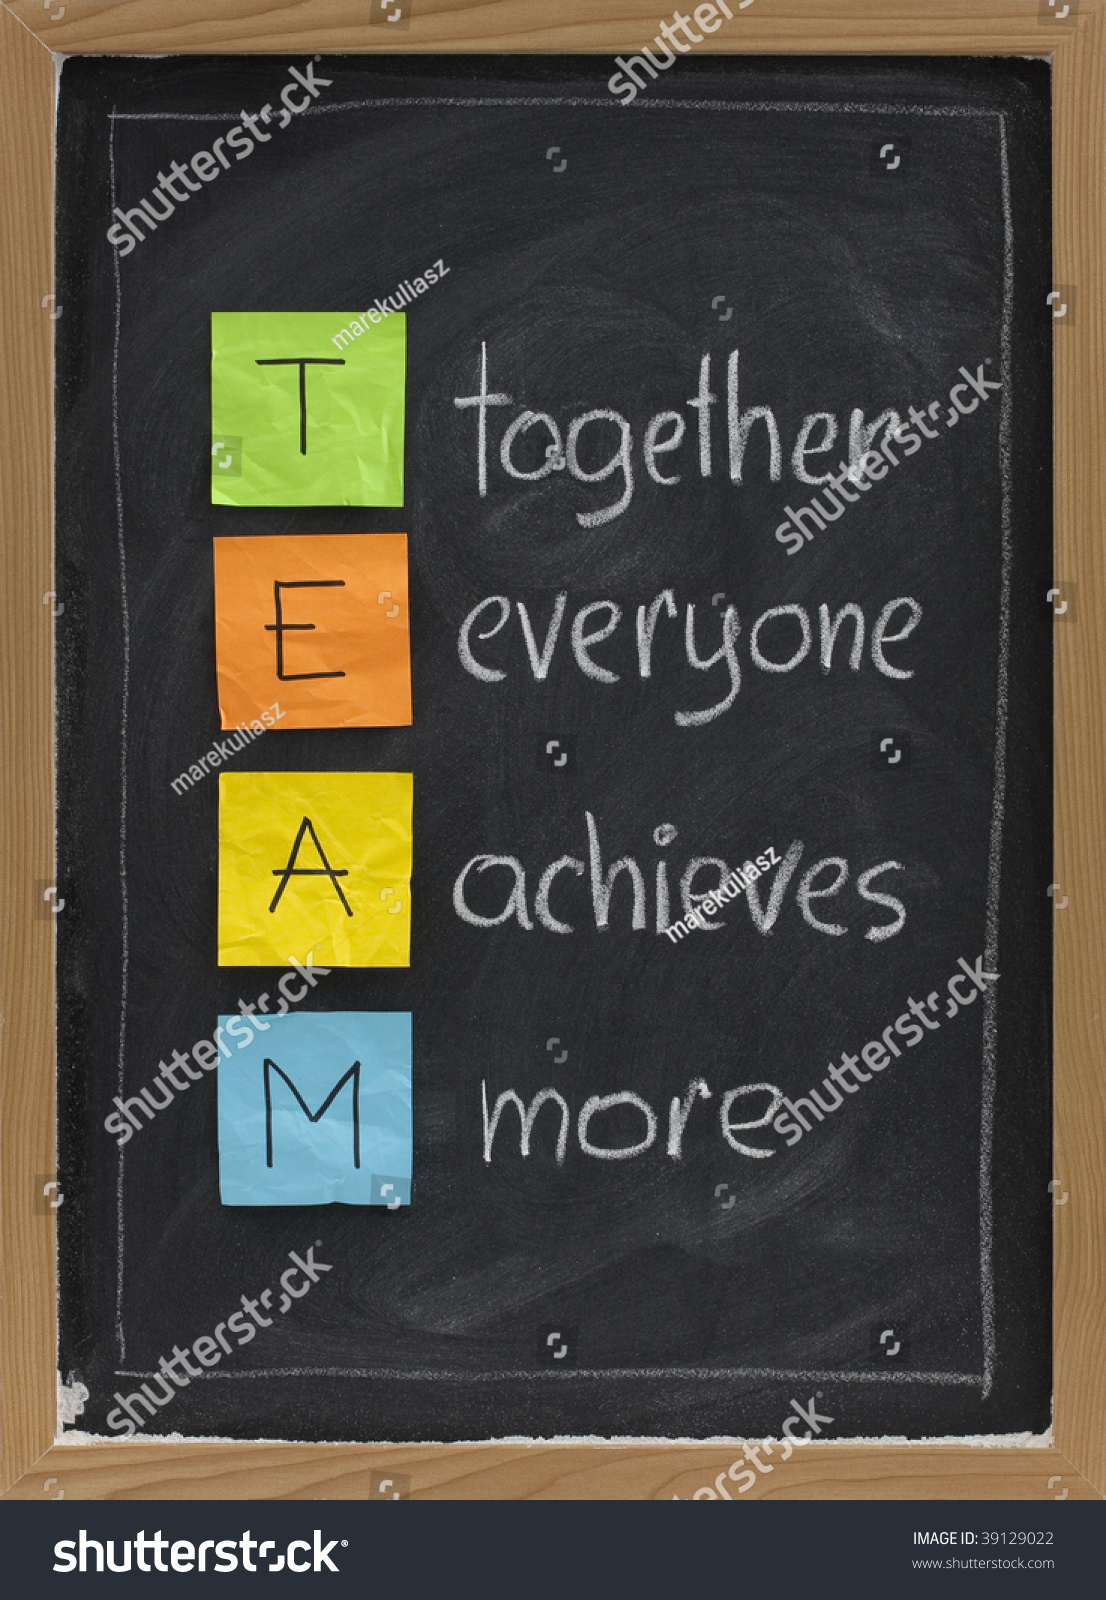 team acronym together everyone achieves more stock photo  team acronym together everyone achieves more teamwork motivation concept color sticky notes